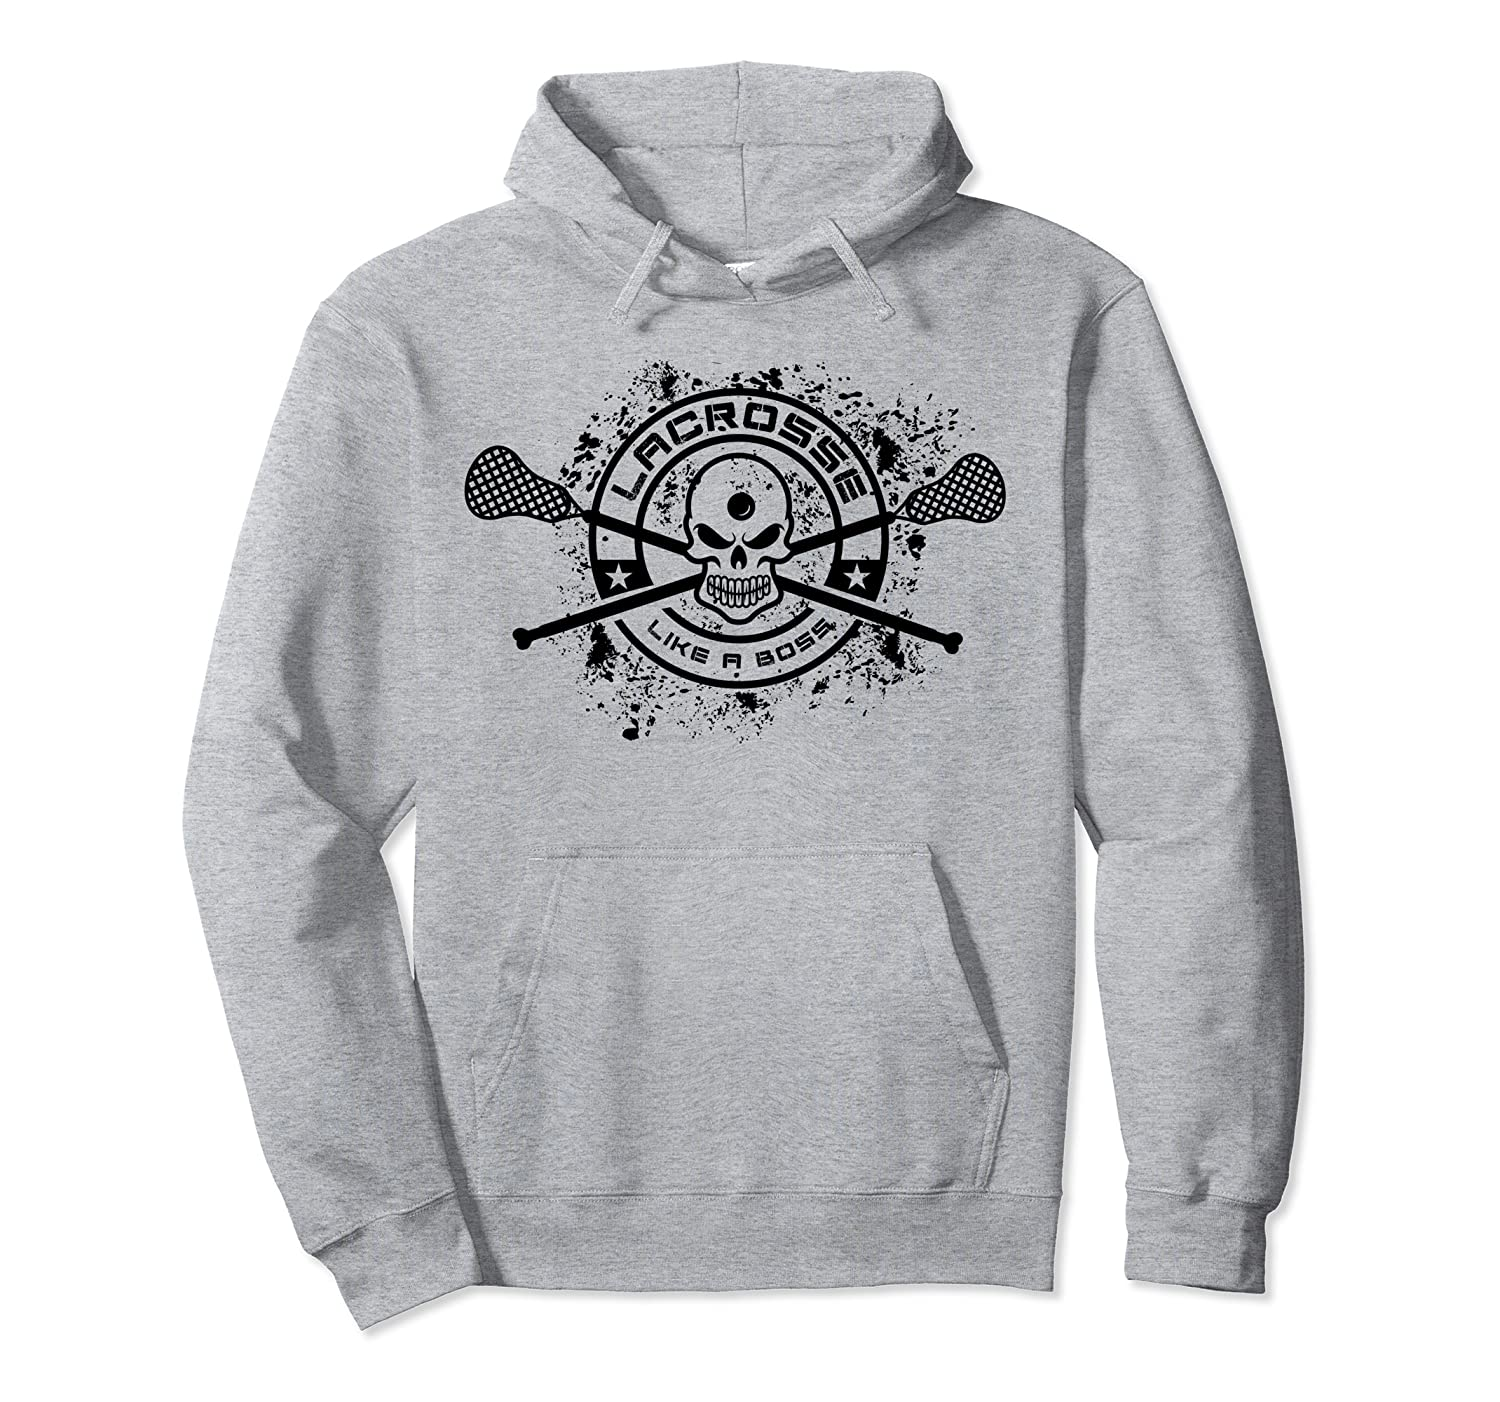 Lax with skulls and Sticks, Lacrosse gift for fan or player Pullover Hoodie